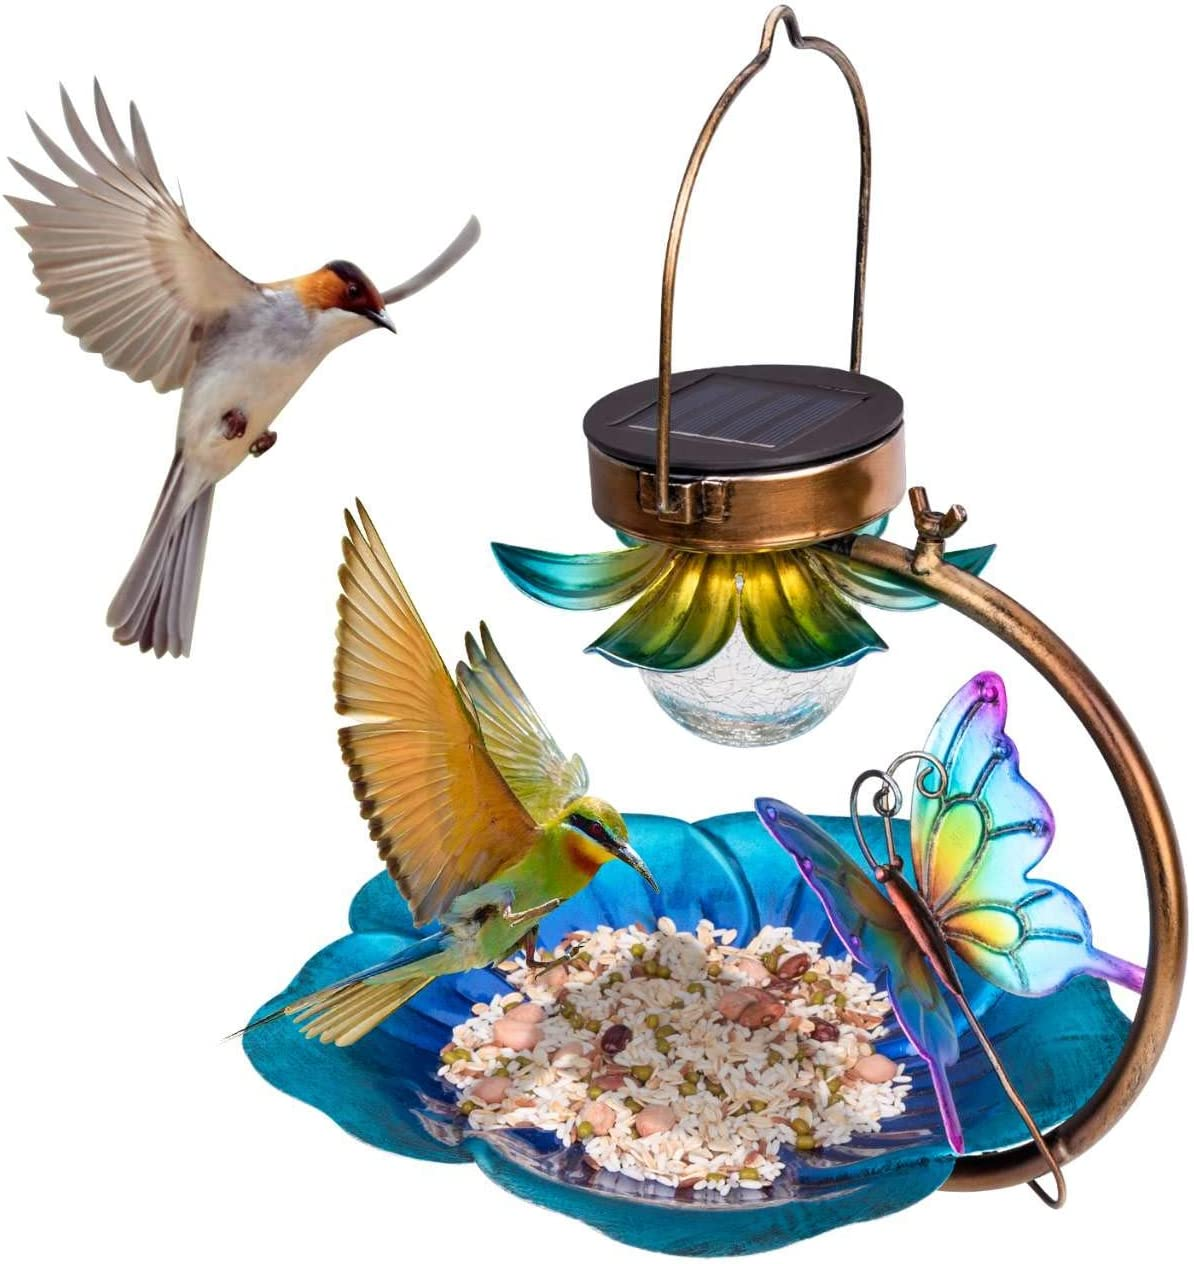 Birdream Solar Bird Feeder for Outside Hanging Wild Birdfeeders Seed Tray Outdoor Solar Powered Garden Light Metal Butterfly Decorative LED Landscape Lighting Waterproof 9.5 Inch Dia for Yard